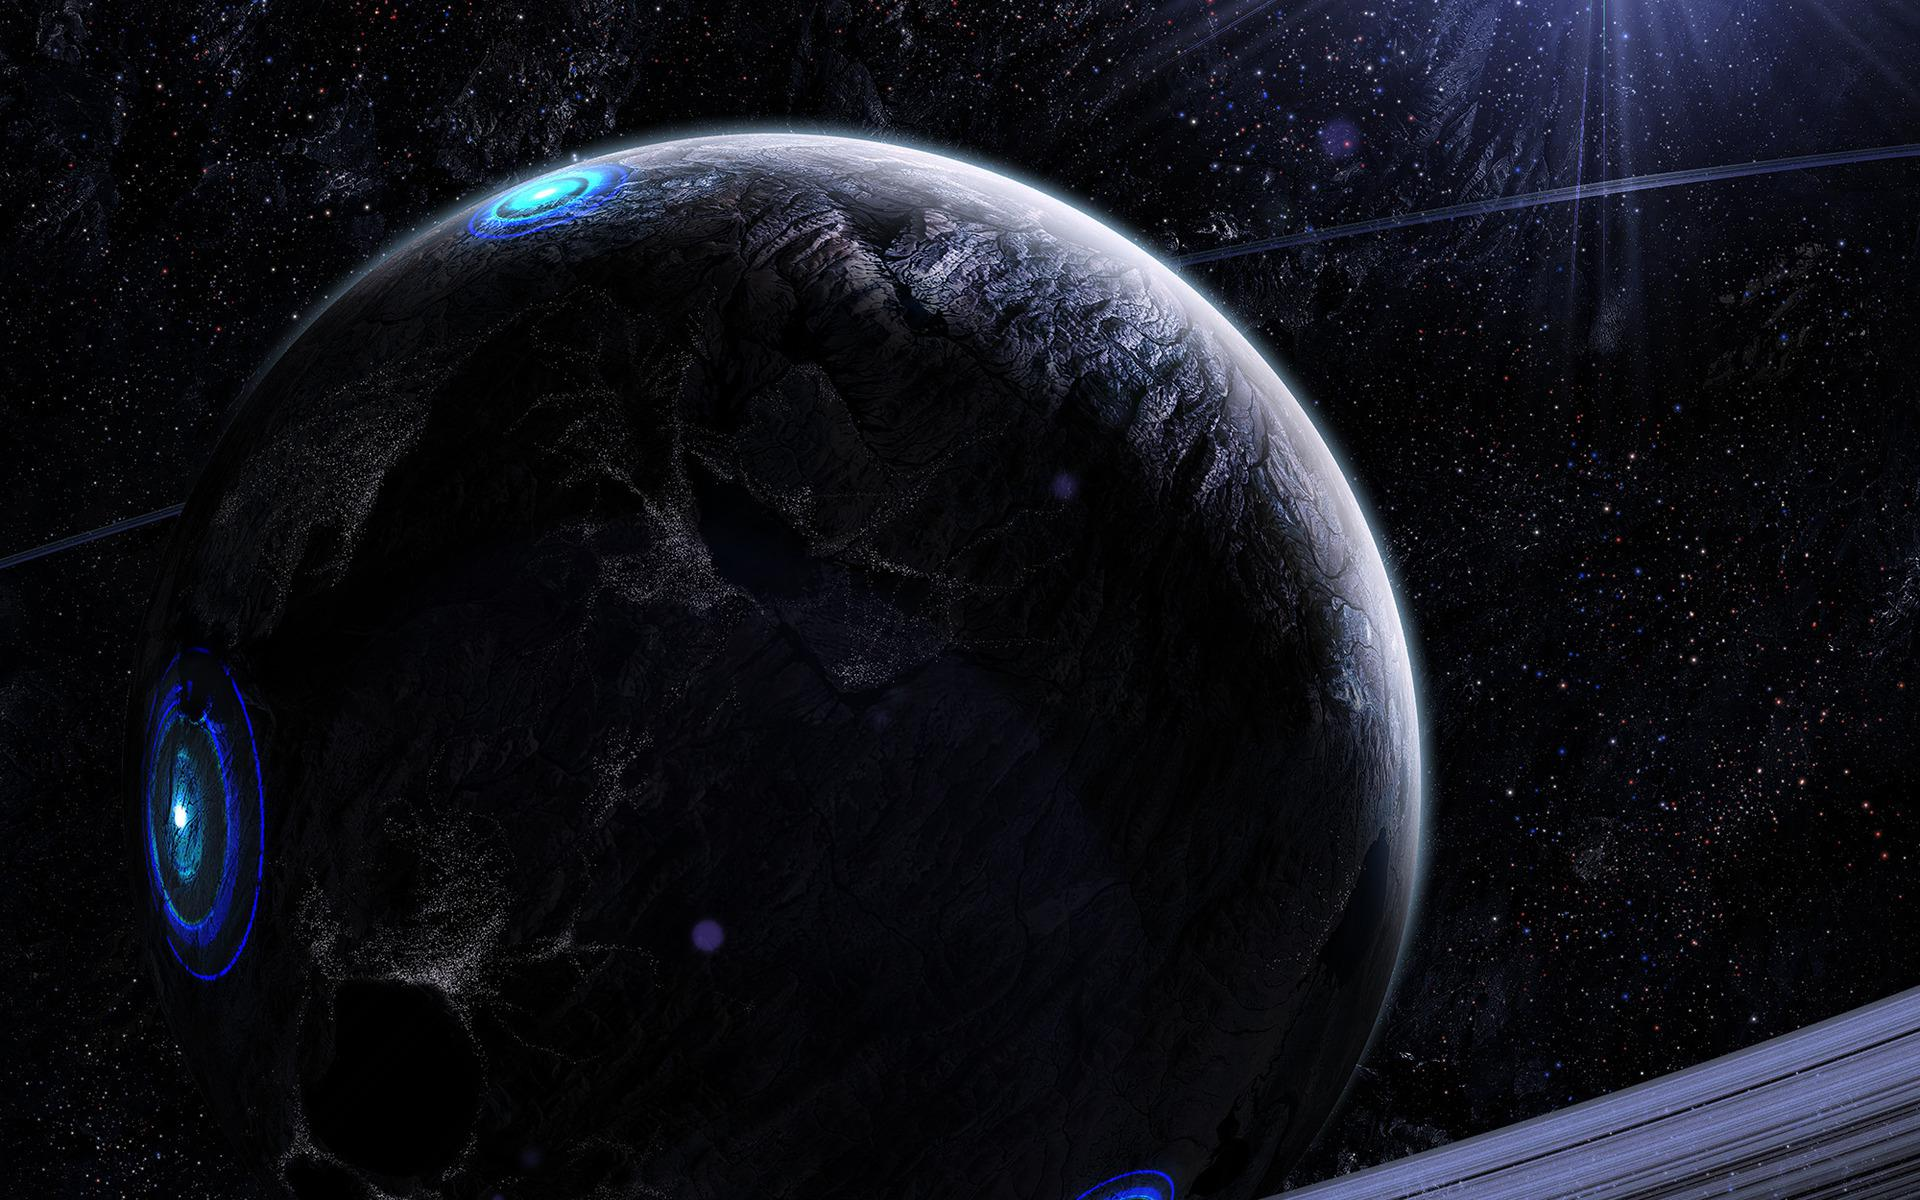 Gray and blue planet